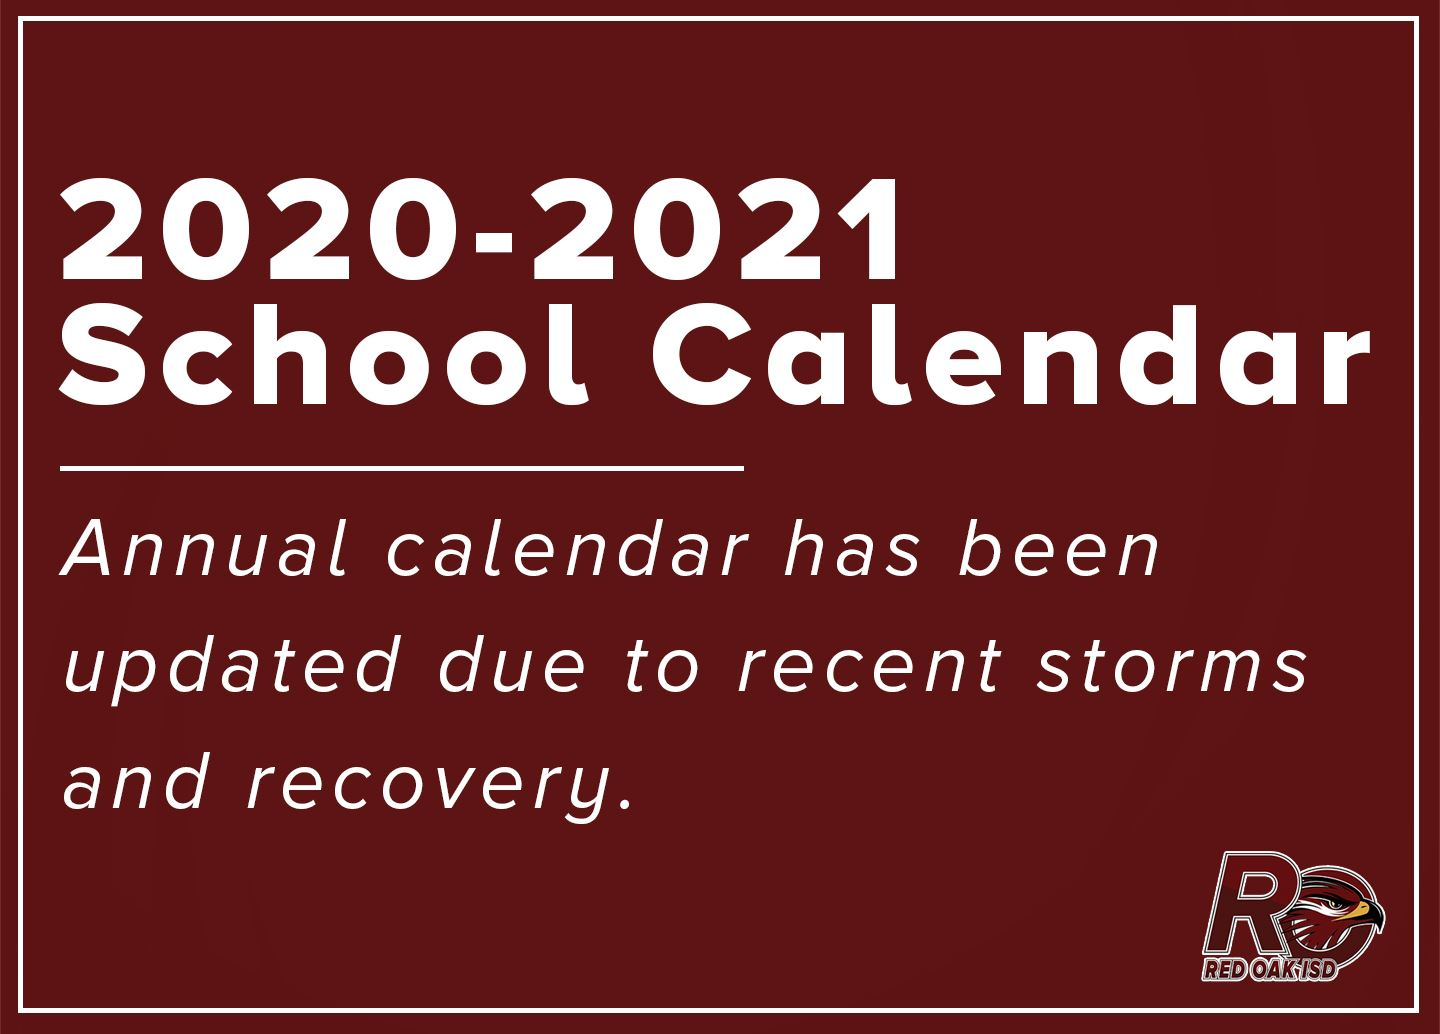 2020=2021 Annual calendar has been updated due recent storms and recovery.